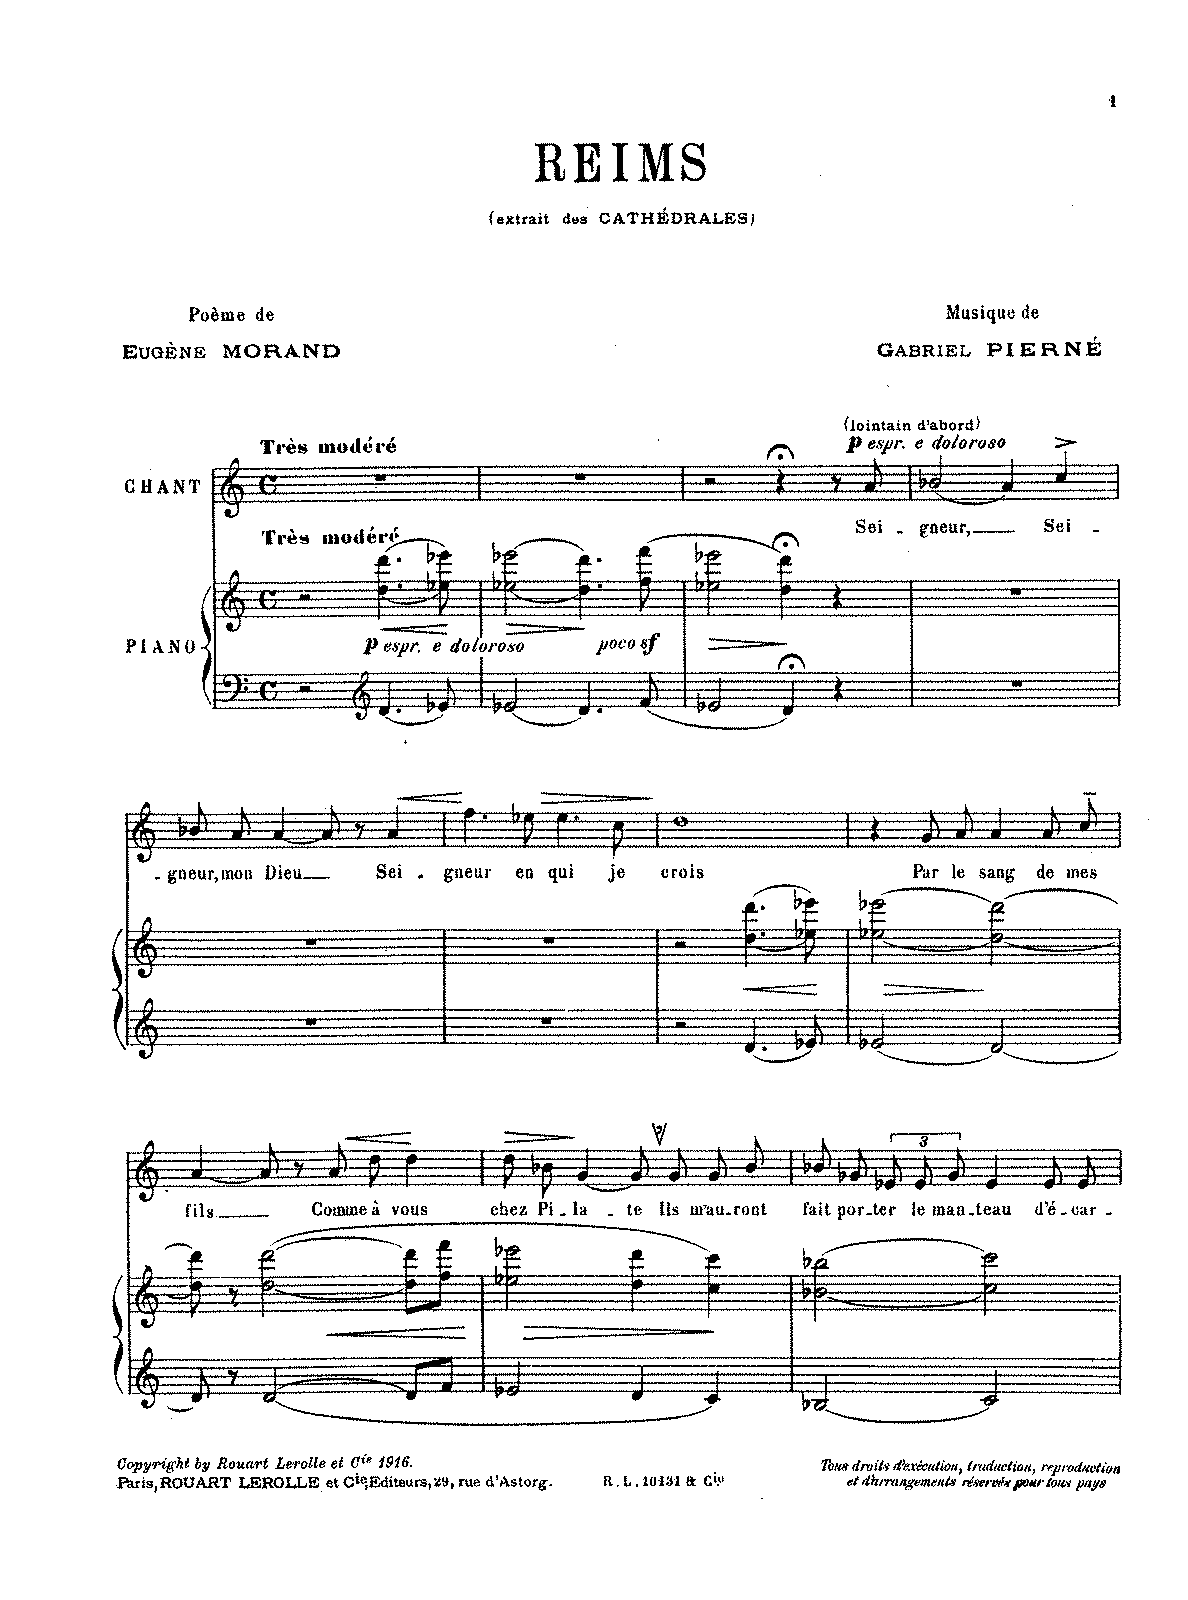 PMLP72575-Pierné - Cathédrales (Reims - voice and piano).pdf